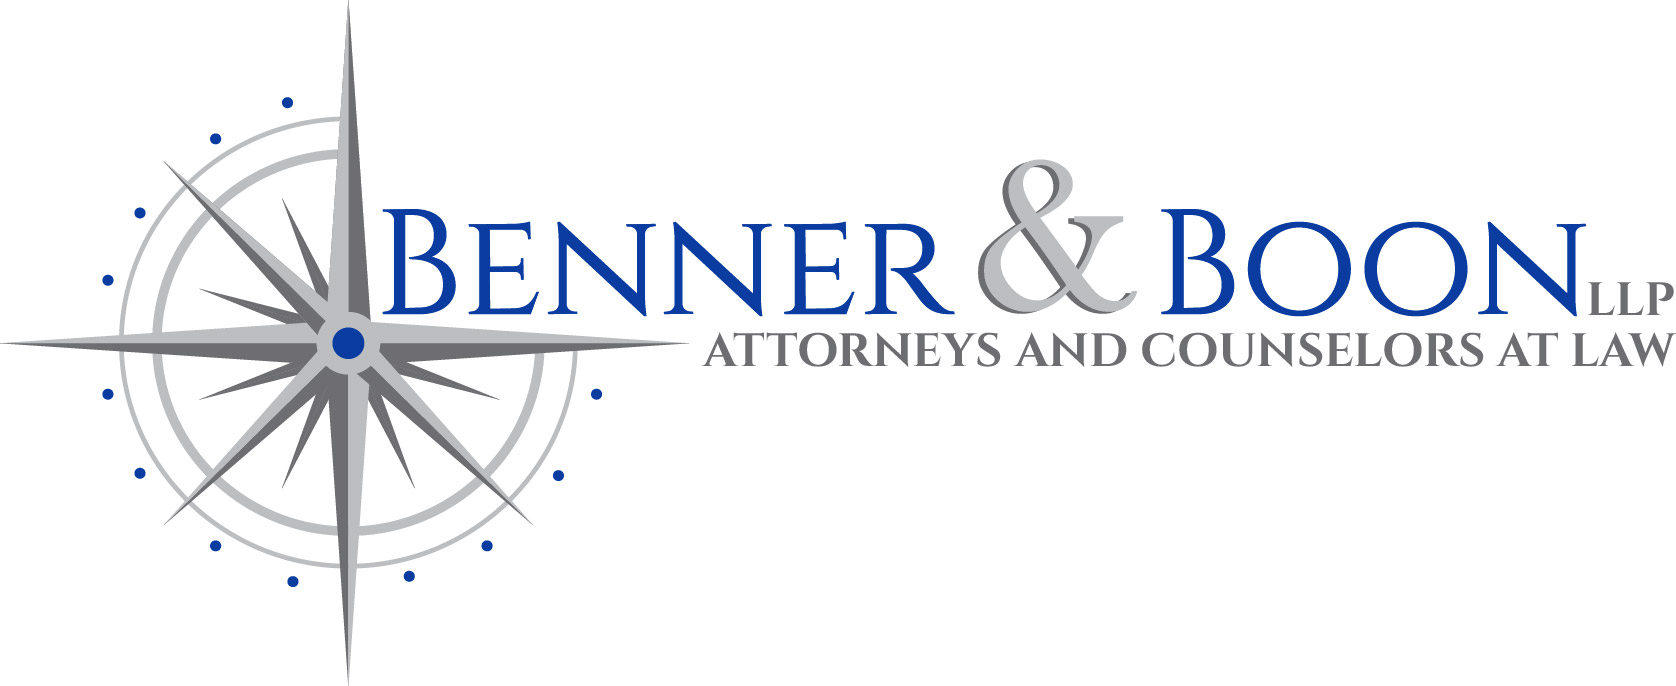 Benner & Boon, LLP   Lawyers in 542 15th St - San Diego CA - Reviews - Photos - Phone Number